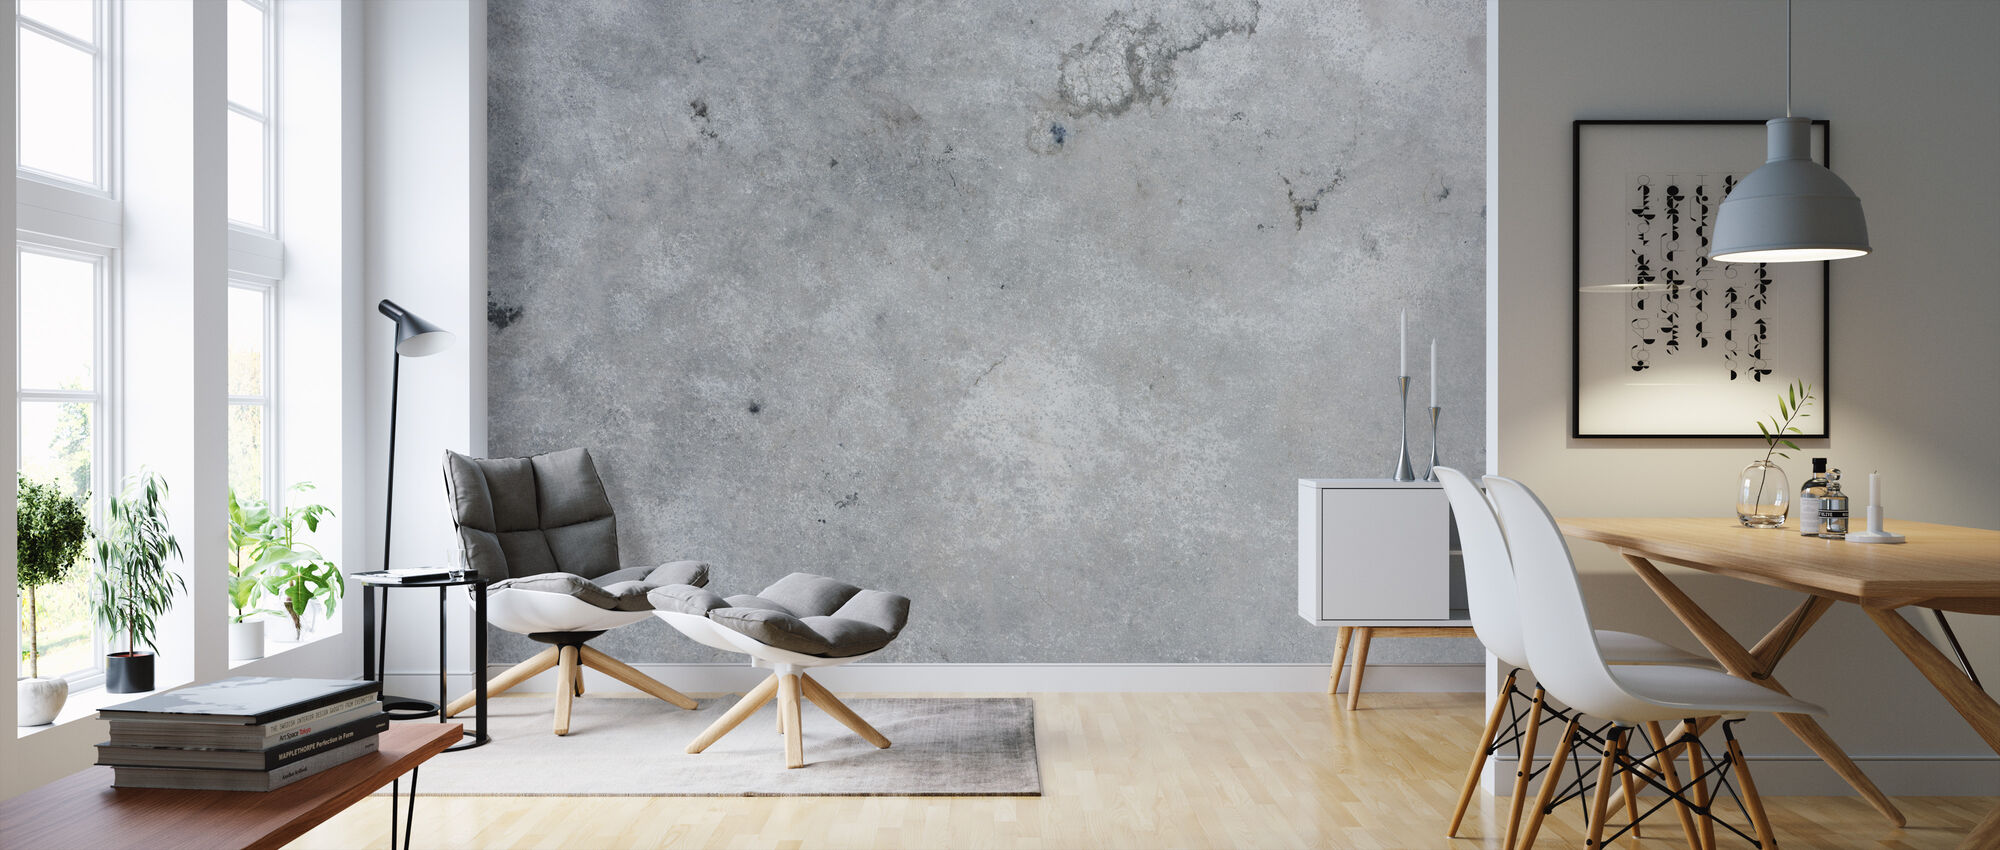 Bleached Concrete Wall - Wallpaper - Living Room